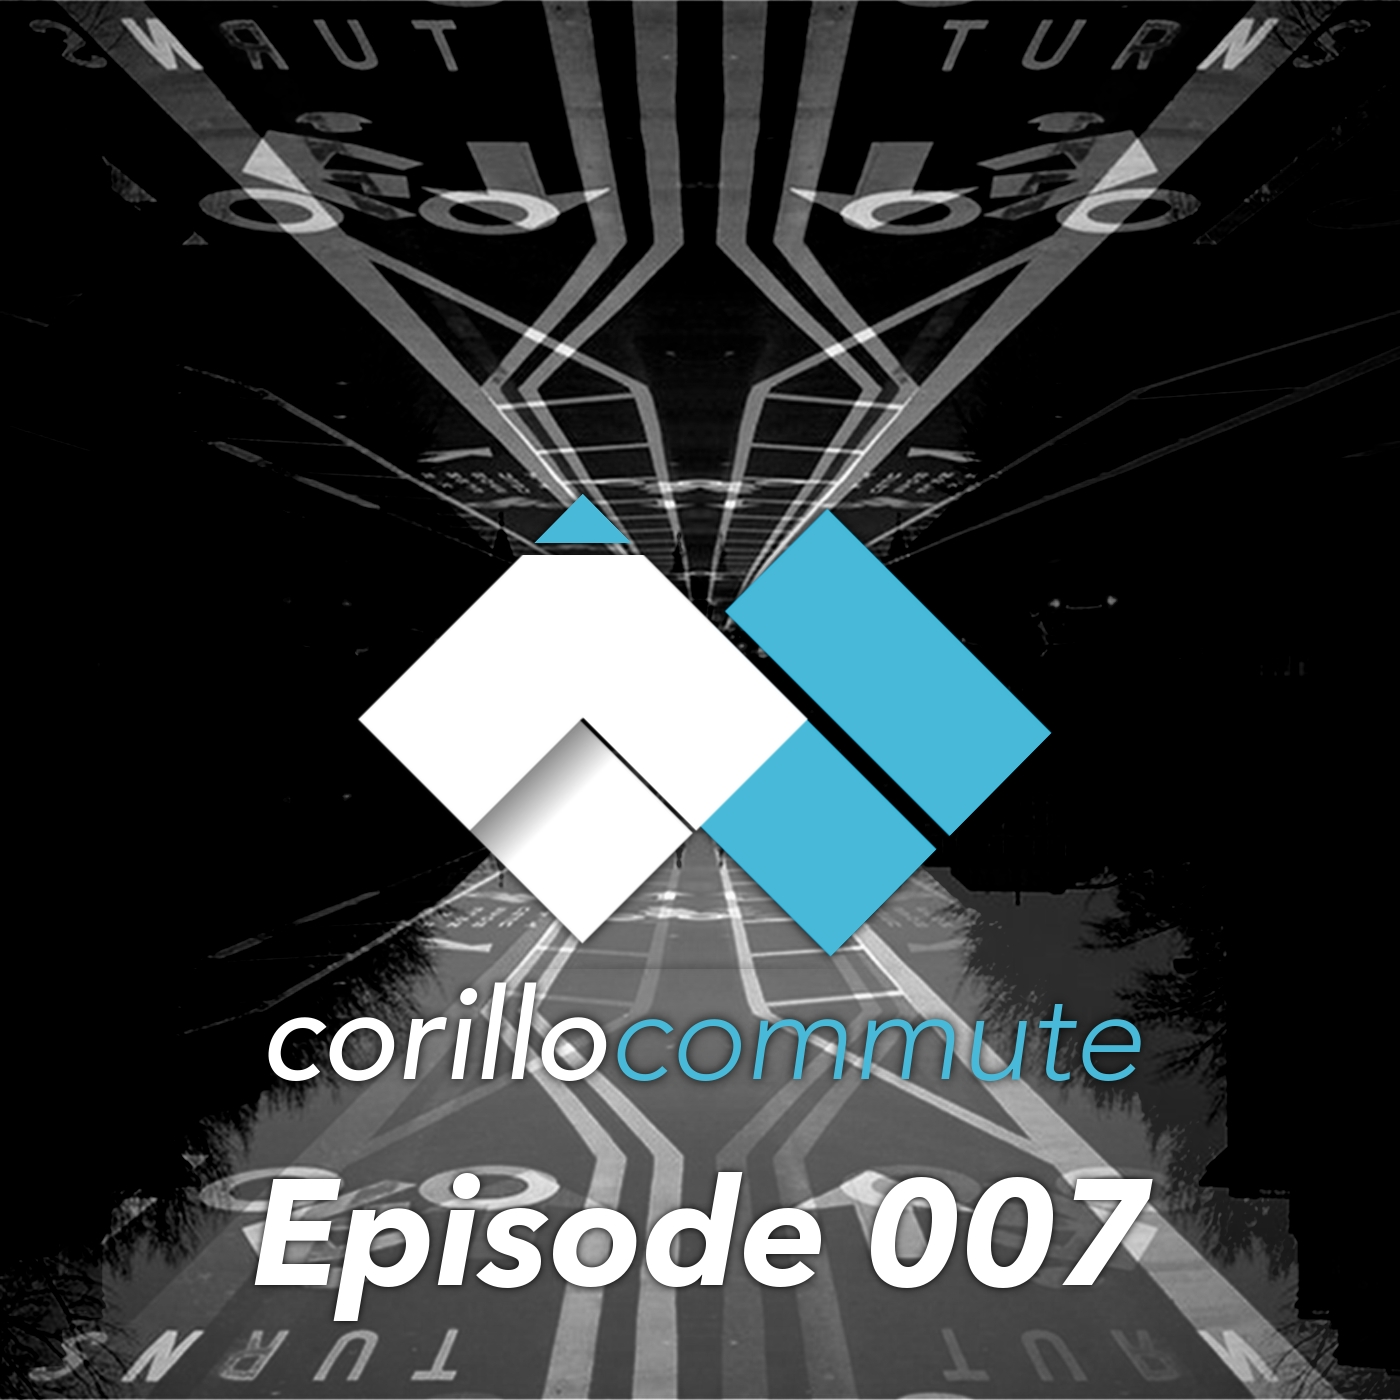 Corillo Commute Podcast - Episode 007 cover